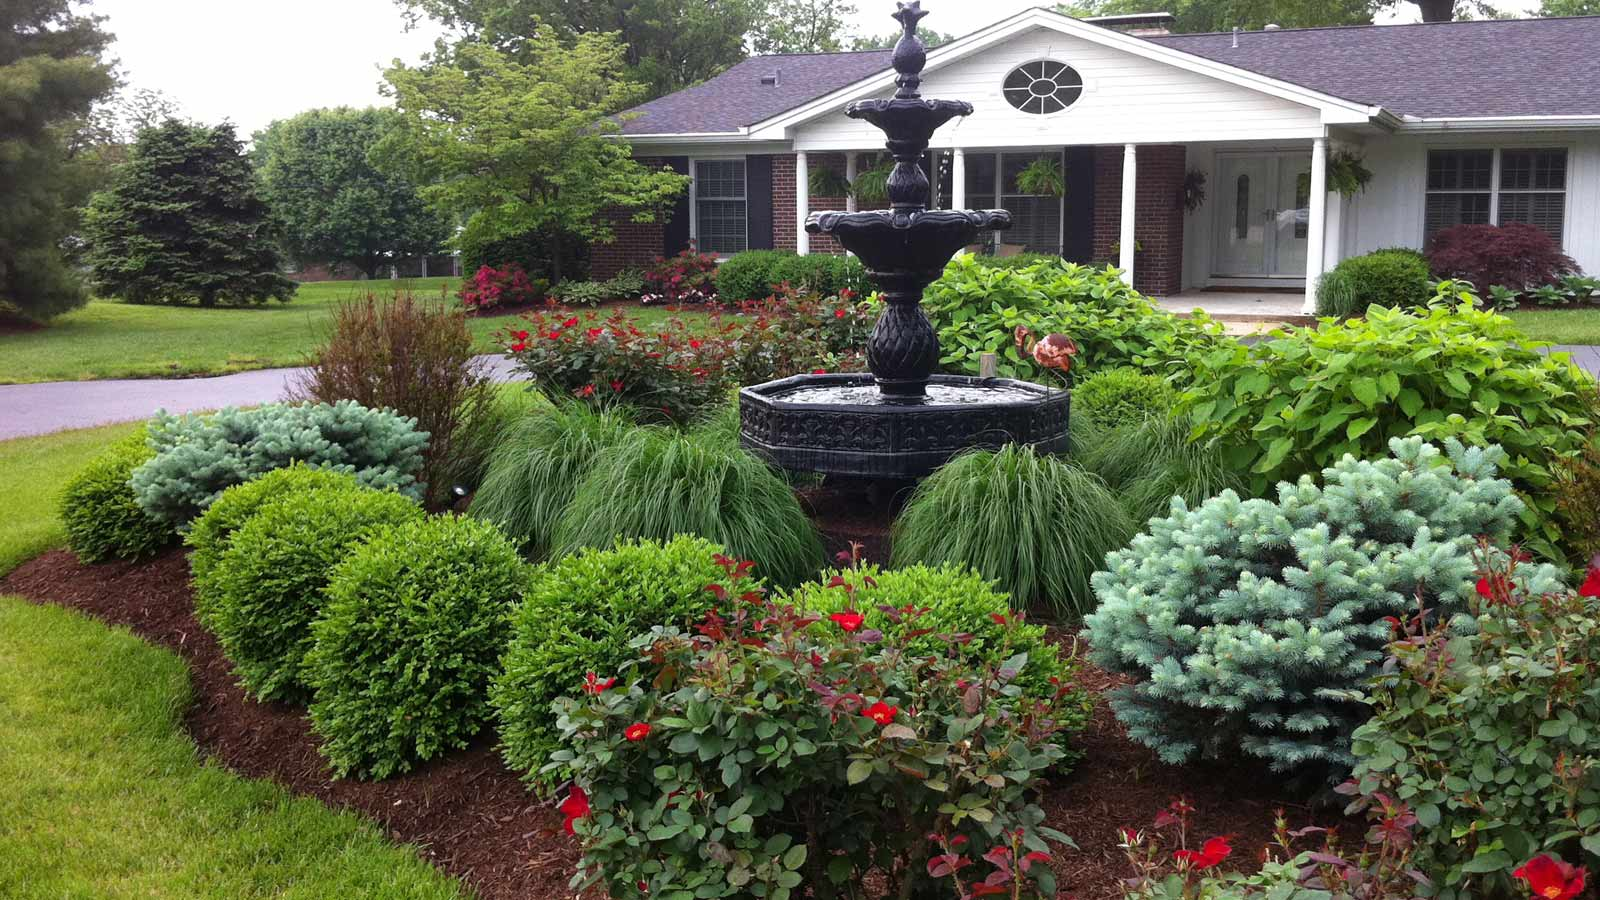 Residential Landscaping-Spring Hill FL Outdoor Living & Designs-We offer Landscape Design, Outdoor Patios & Pergolas, Outdoor Living Spaces, Stonescapes, Residential & Commercial Landscaping, Irrigation Installation & Repairs, Drainage Systems, Landscape Lighting, Outdoor Living Spaces, Tree Service, Lawn Service, and more.